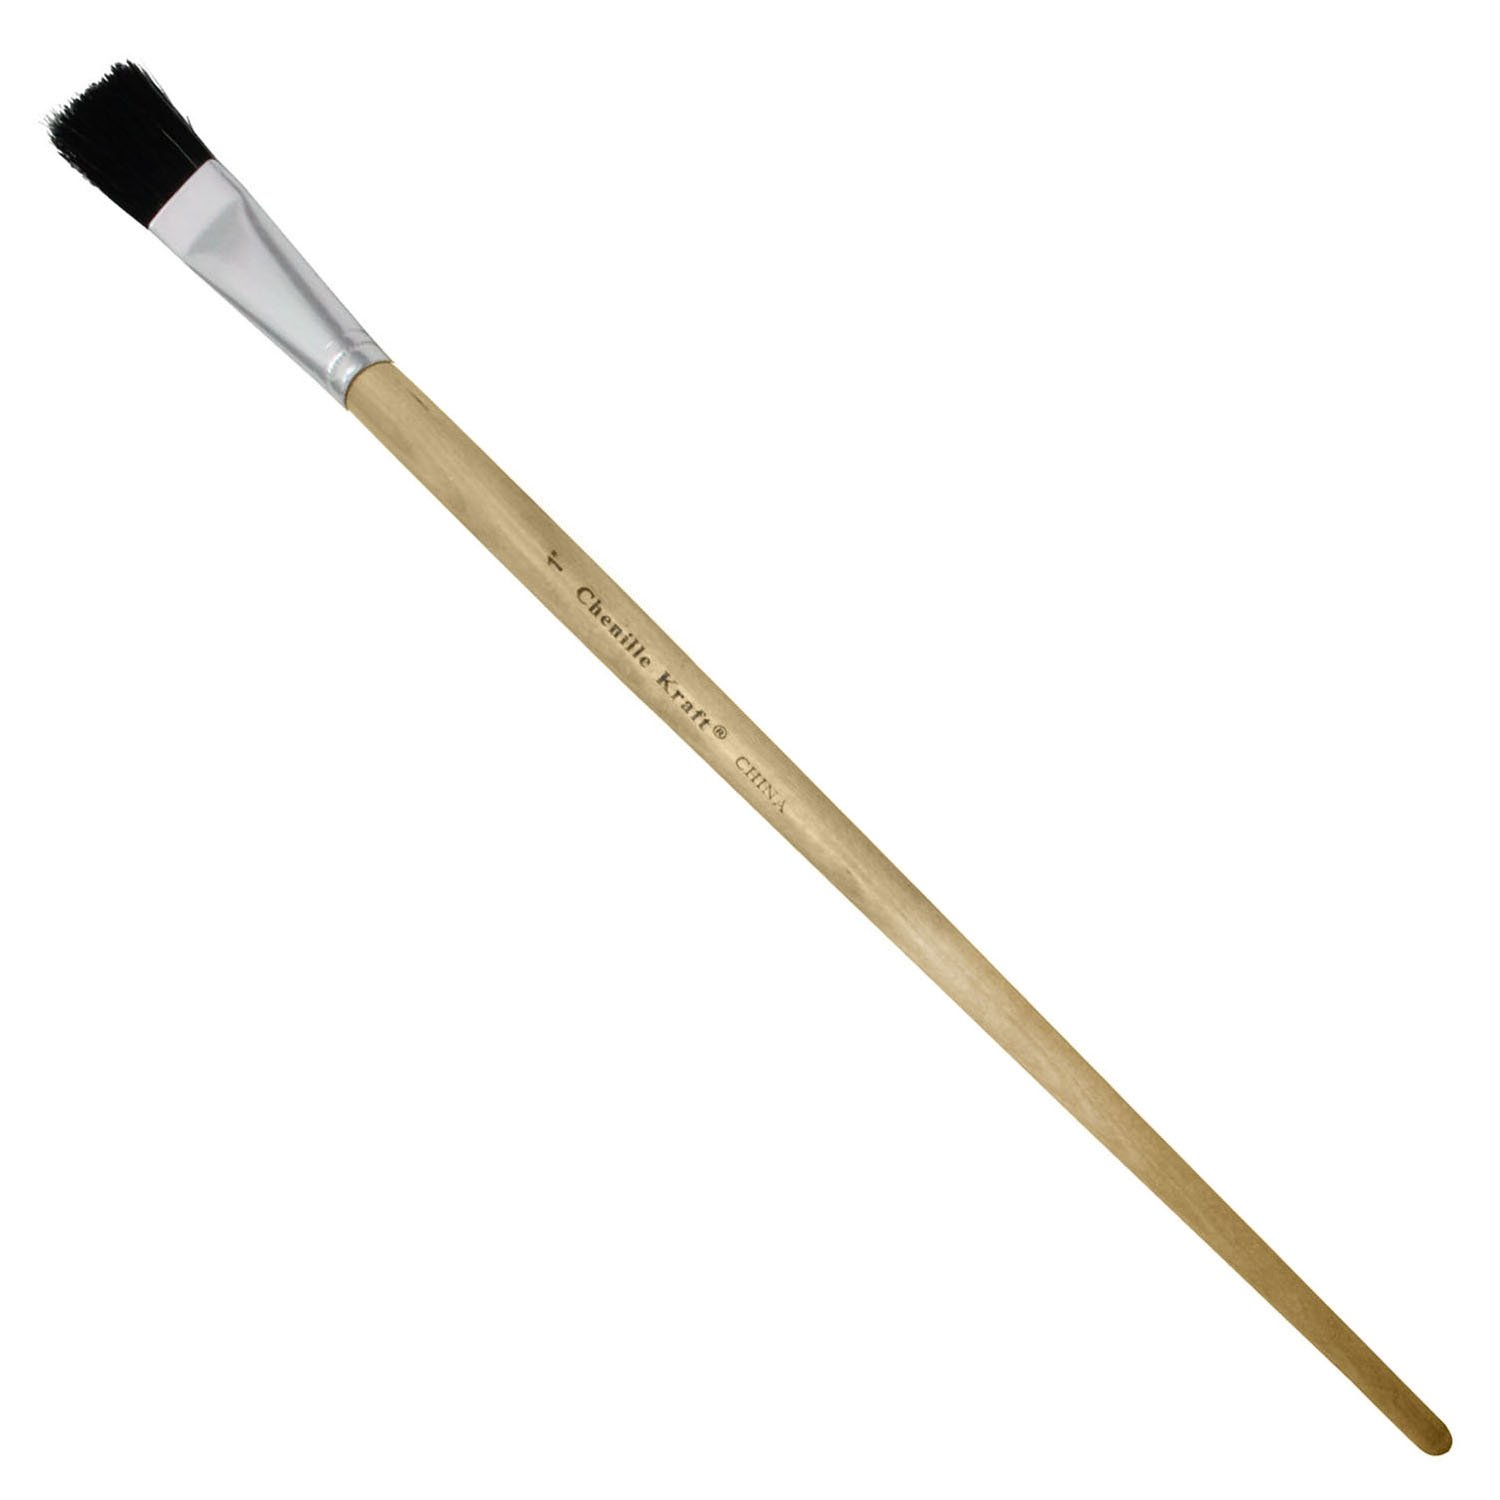 Creativity Street Easel Brushes, Long Handle, Long Handle, 1'' Flat, 13'' Long, 6 Per Pack, 3 Packs by Chenille Kraft